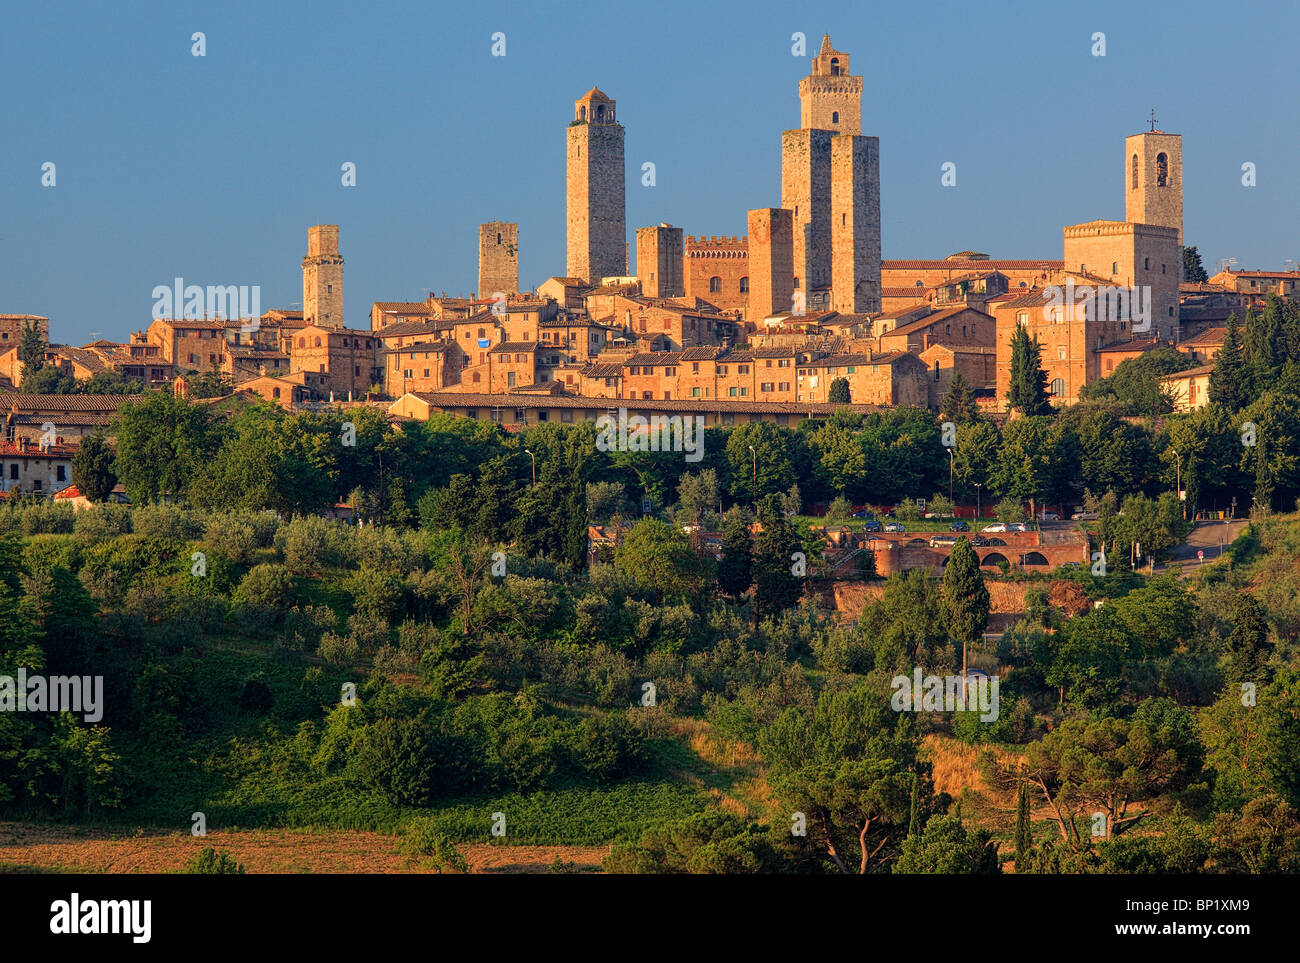 San Gimignano is a small medieval hill town in Tuscany, Italy - Stock Image